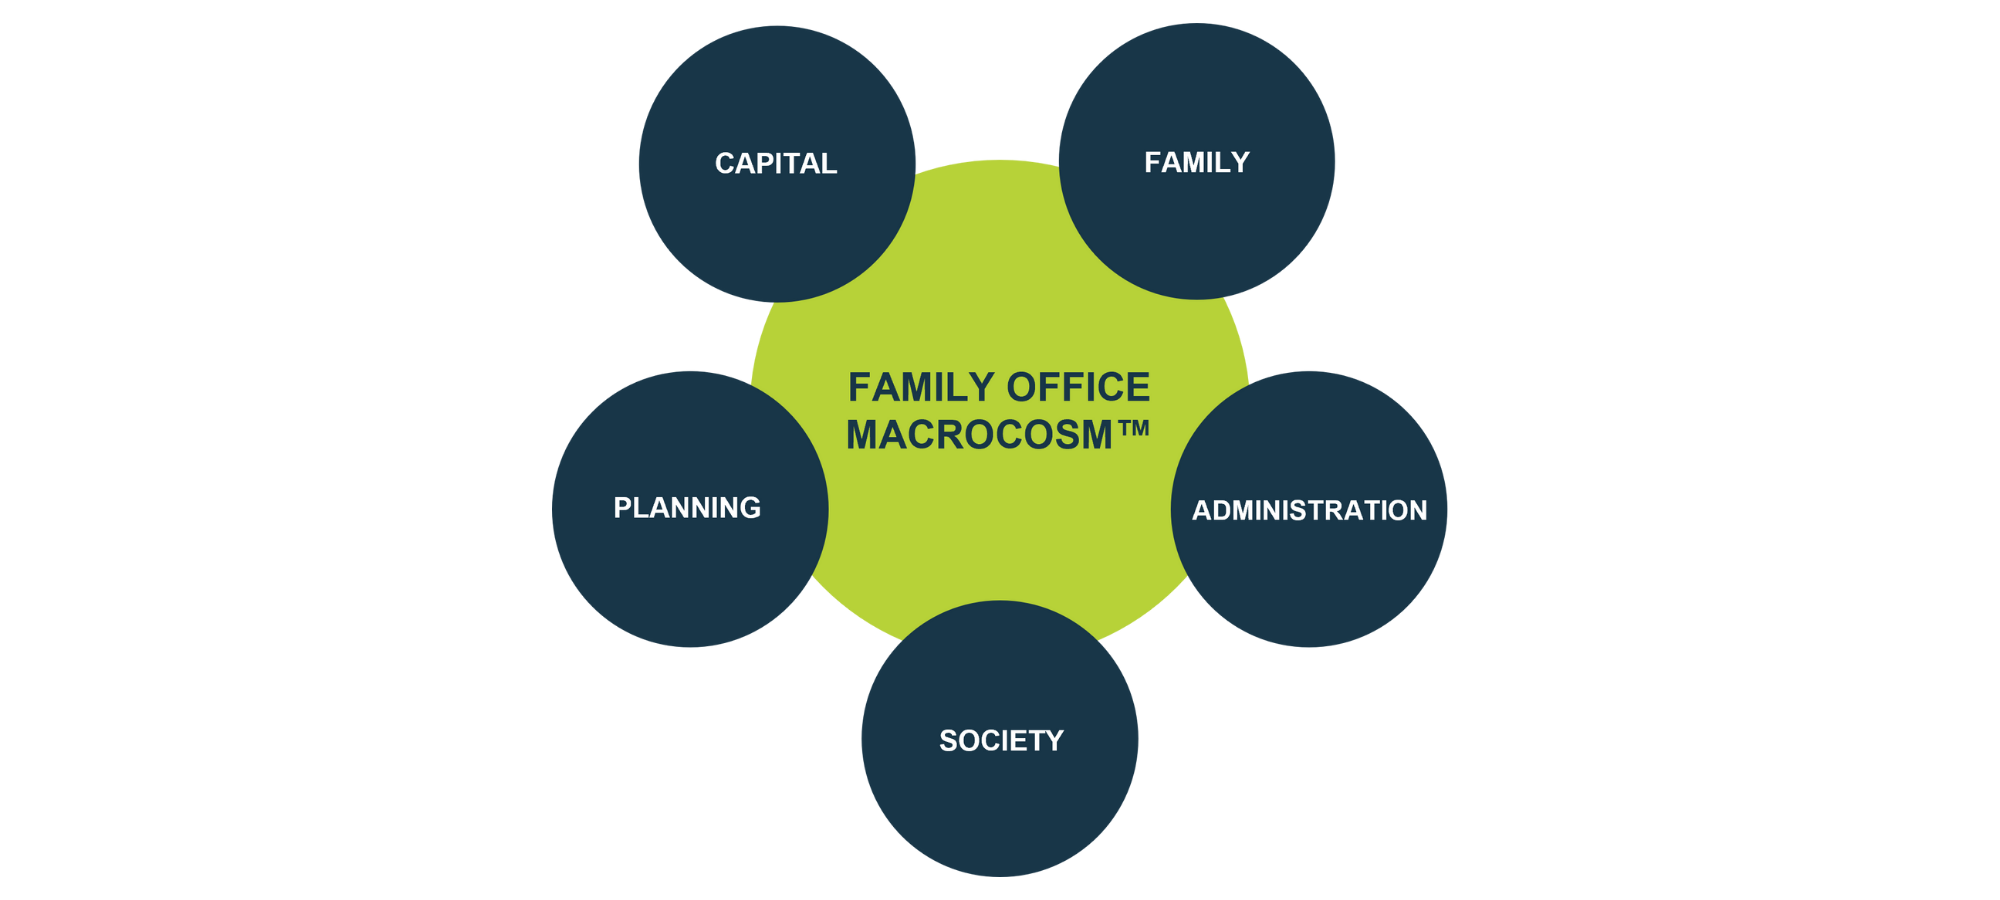 """green circle with """"Family Office Macrocosm"""" in the center and 5 smaller blue circles around it that say """"Family"""", """"Administration"""", """"Society"""", """"Planning"""" and """"Capital"""" distributed proportionally"""